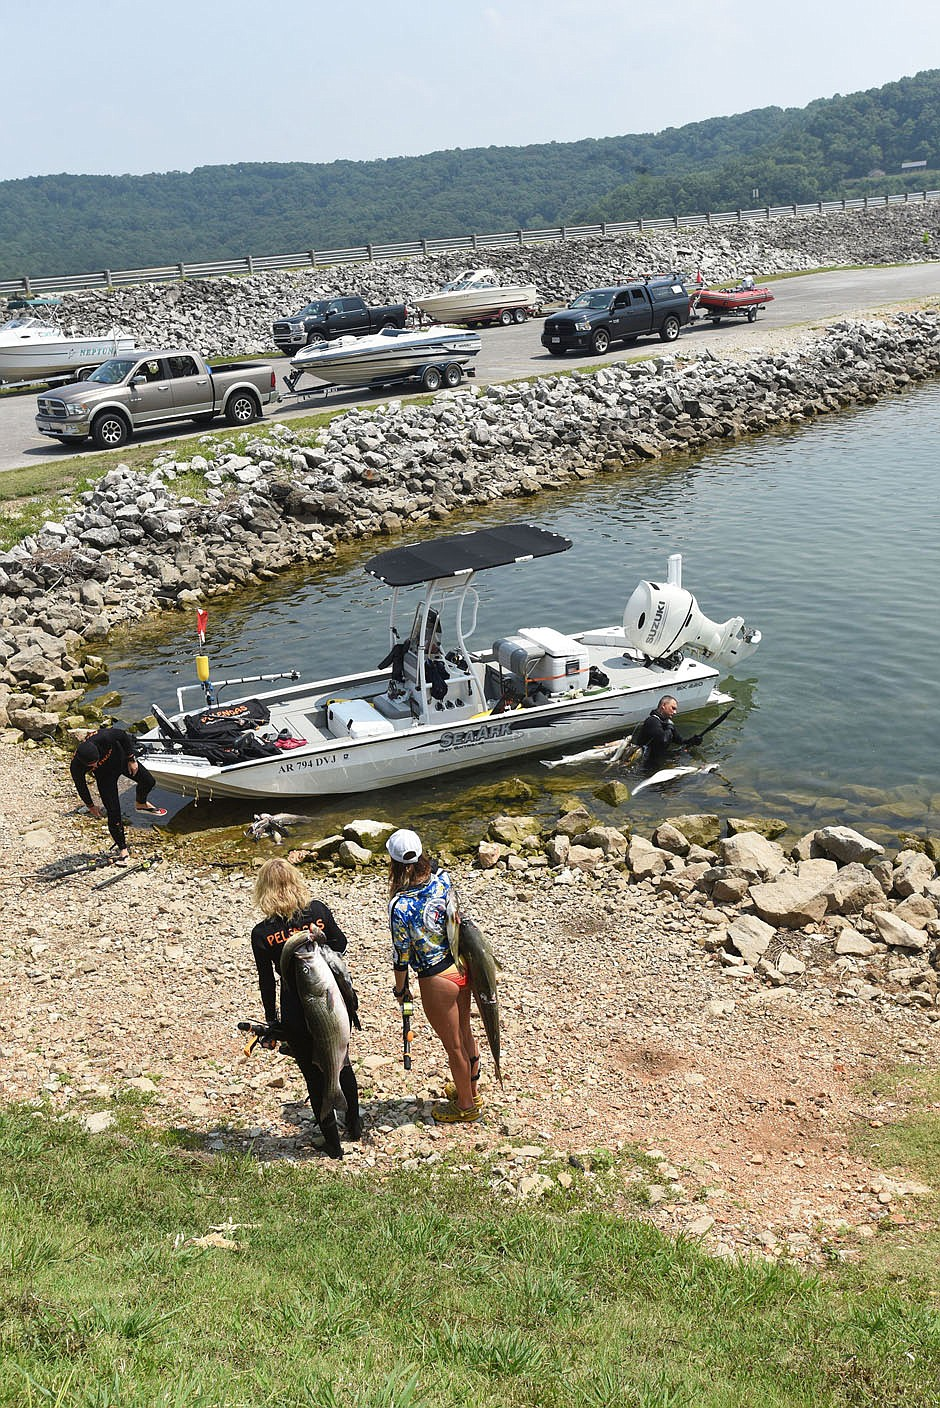 Contestants arrive July 22 2021 at the Beaver Dam day-use area to check in their fish. (NWA Democrat-Gazette/Flip Putthoff)